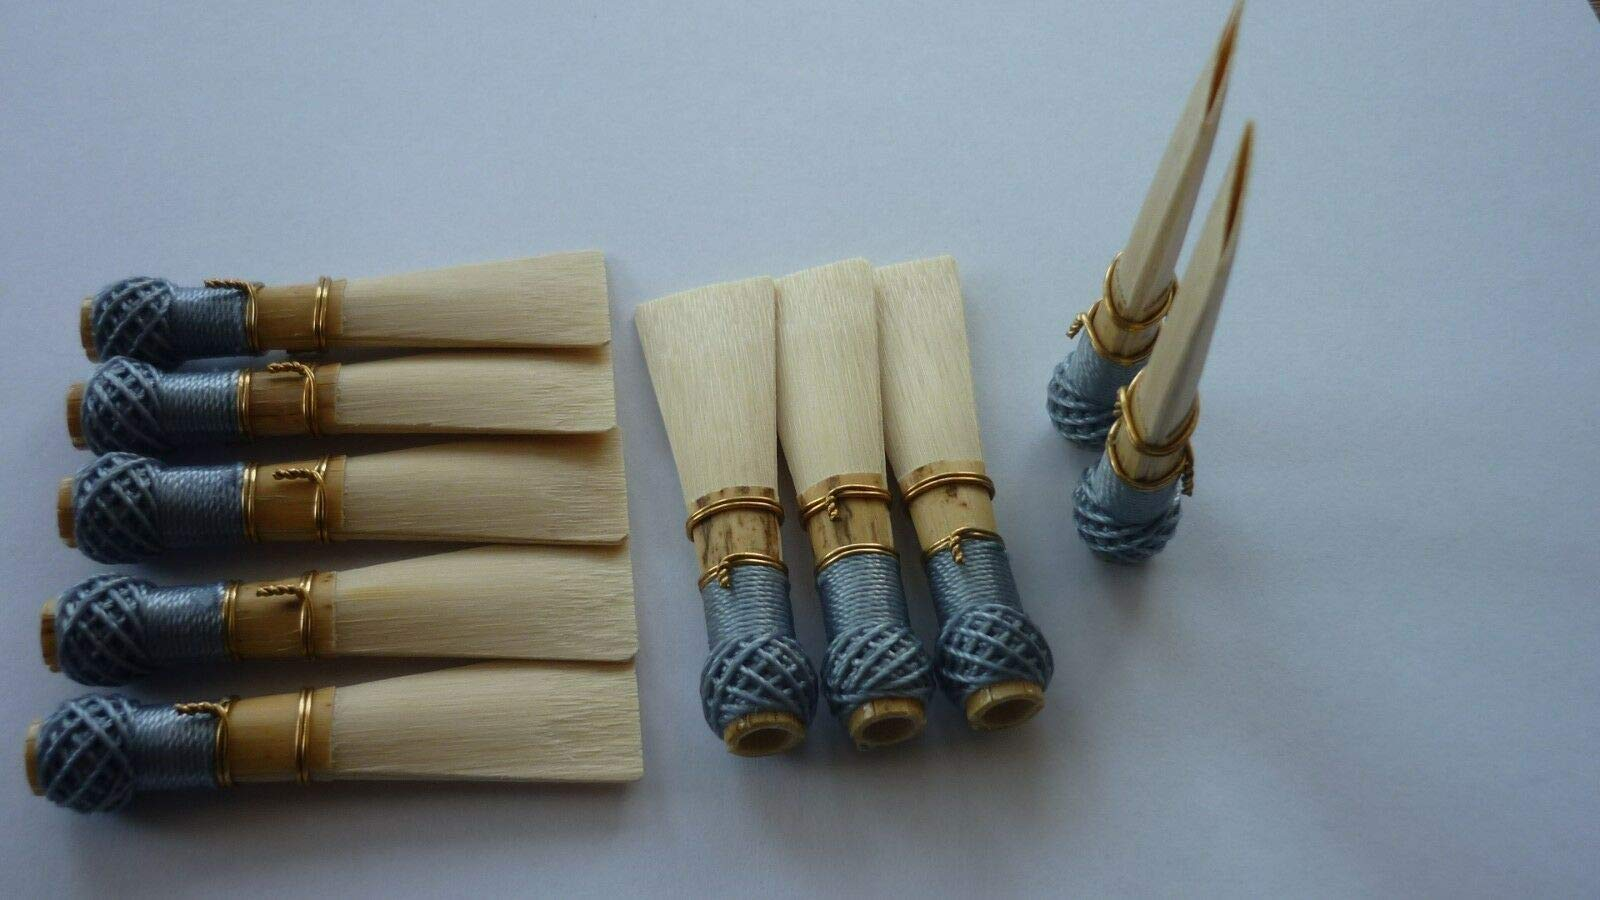 FidgetKute 10 Bassoon Reed Blanks Open tip from Donati Cane R2 /dukov_Reeds DiR2O Show One Size